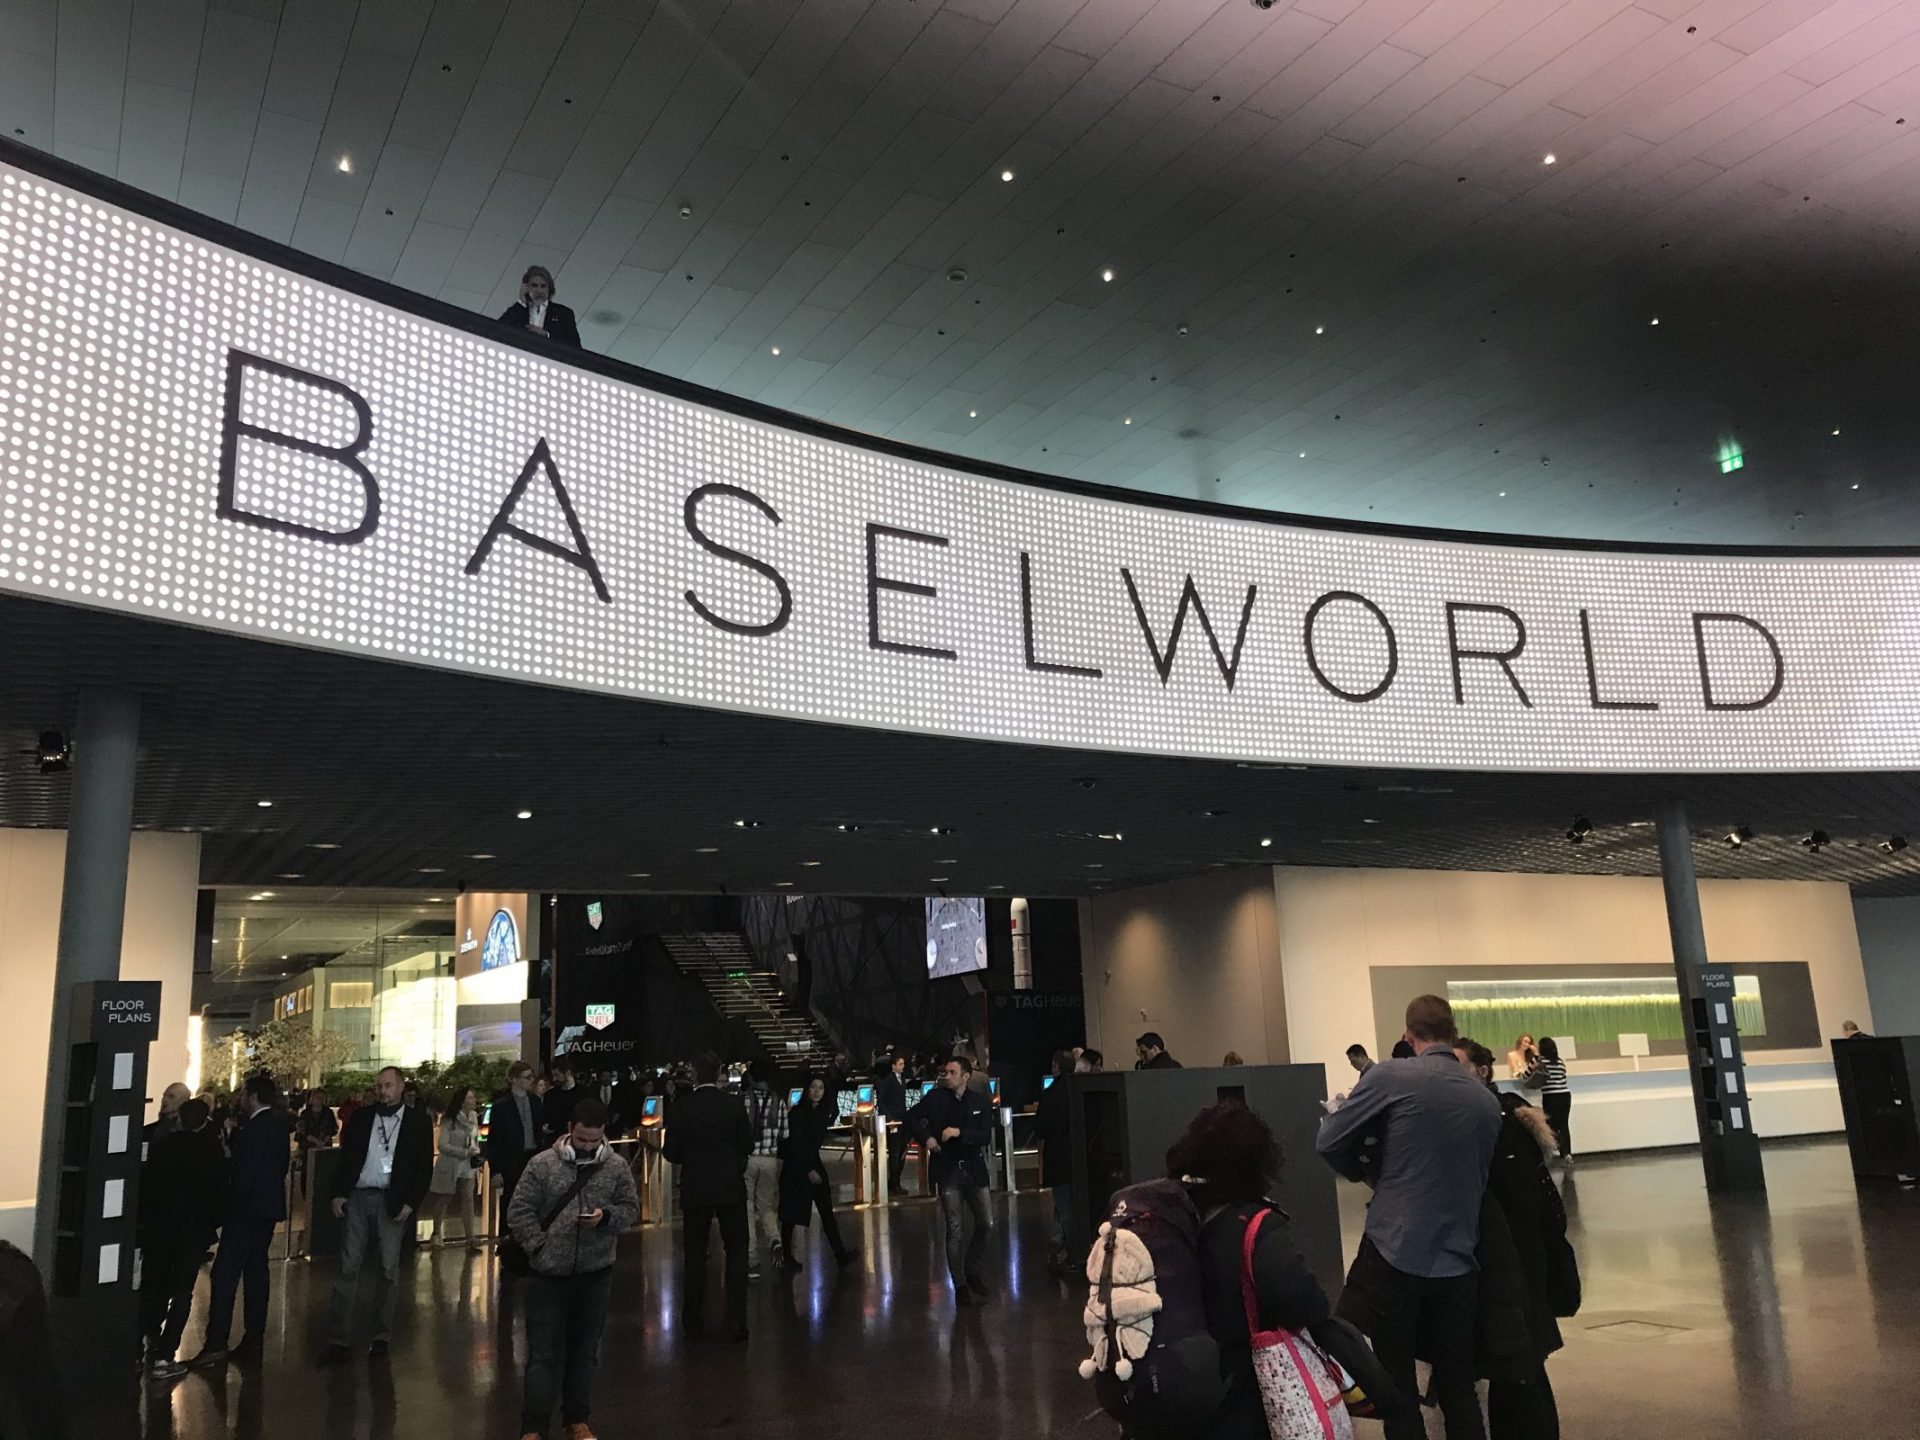 Best Release of Baselworld And The Ultimate Military Watches - Baselworld 2018 Day 1